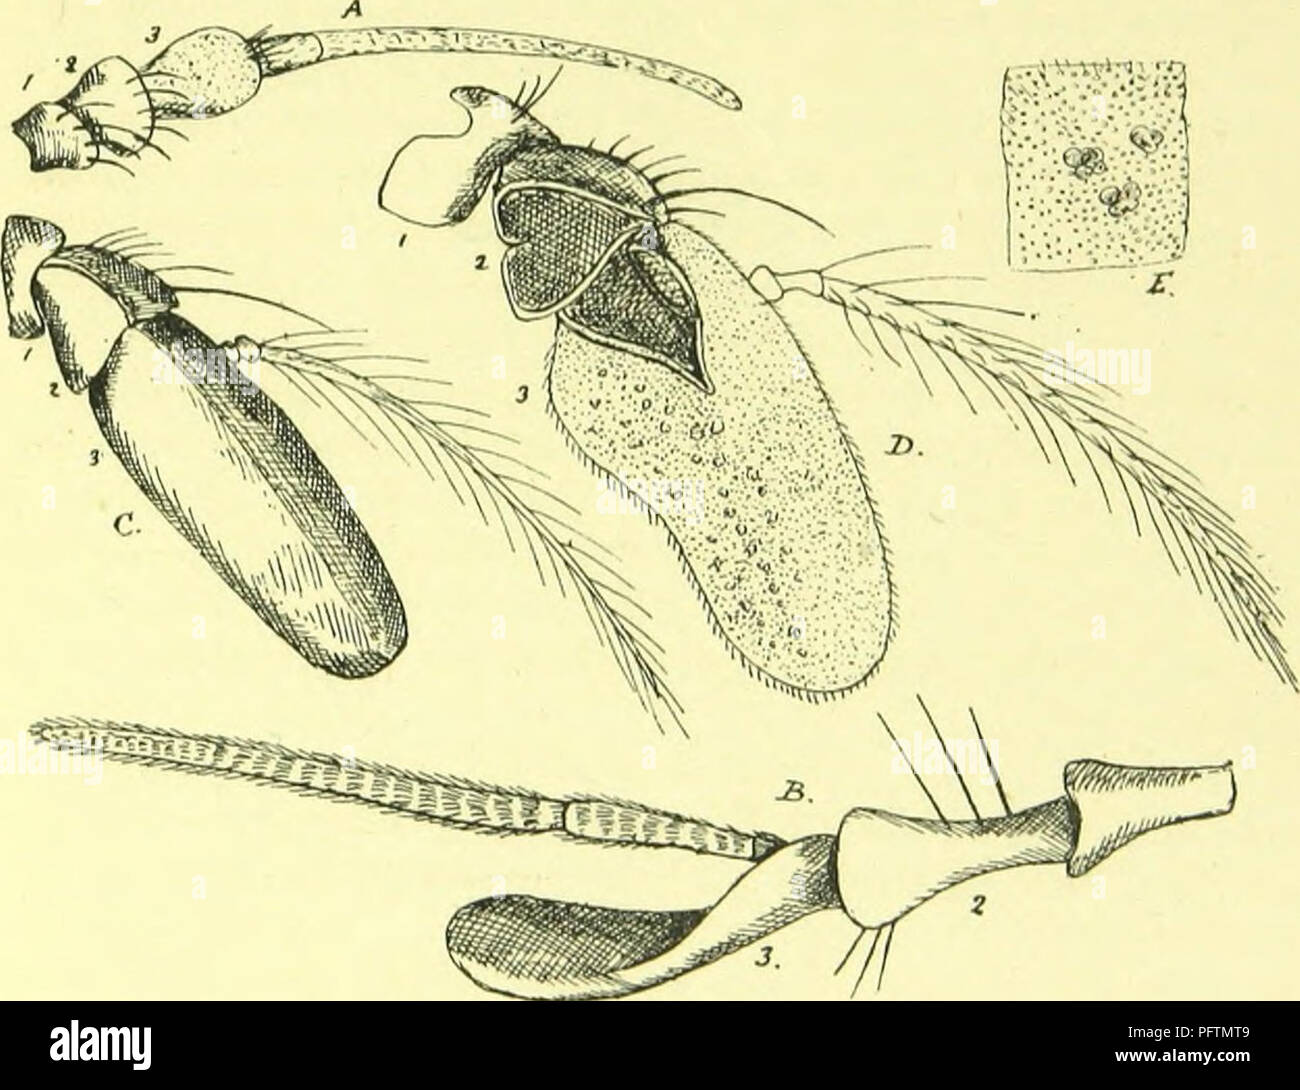 The anatomy, physiology, morphology and development of the blow-fly ...